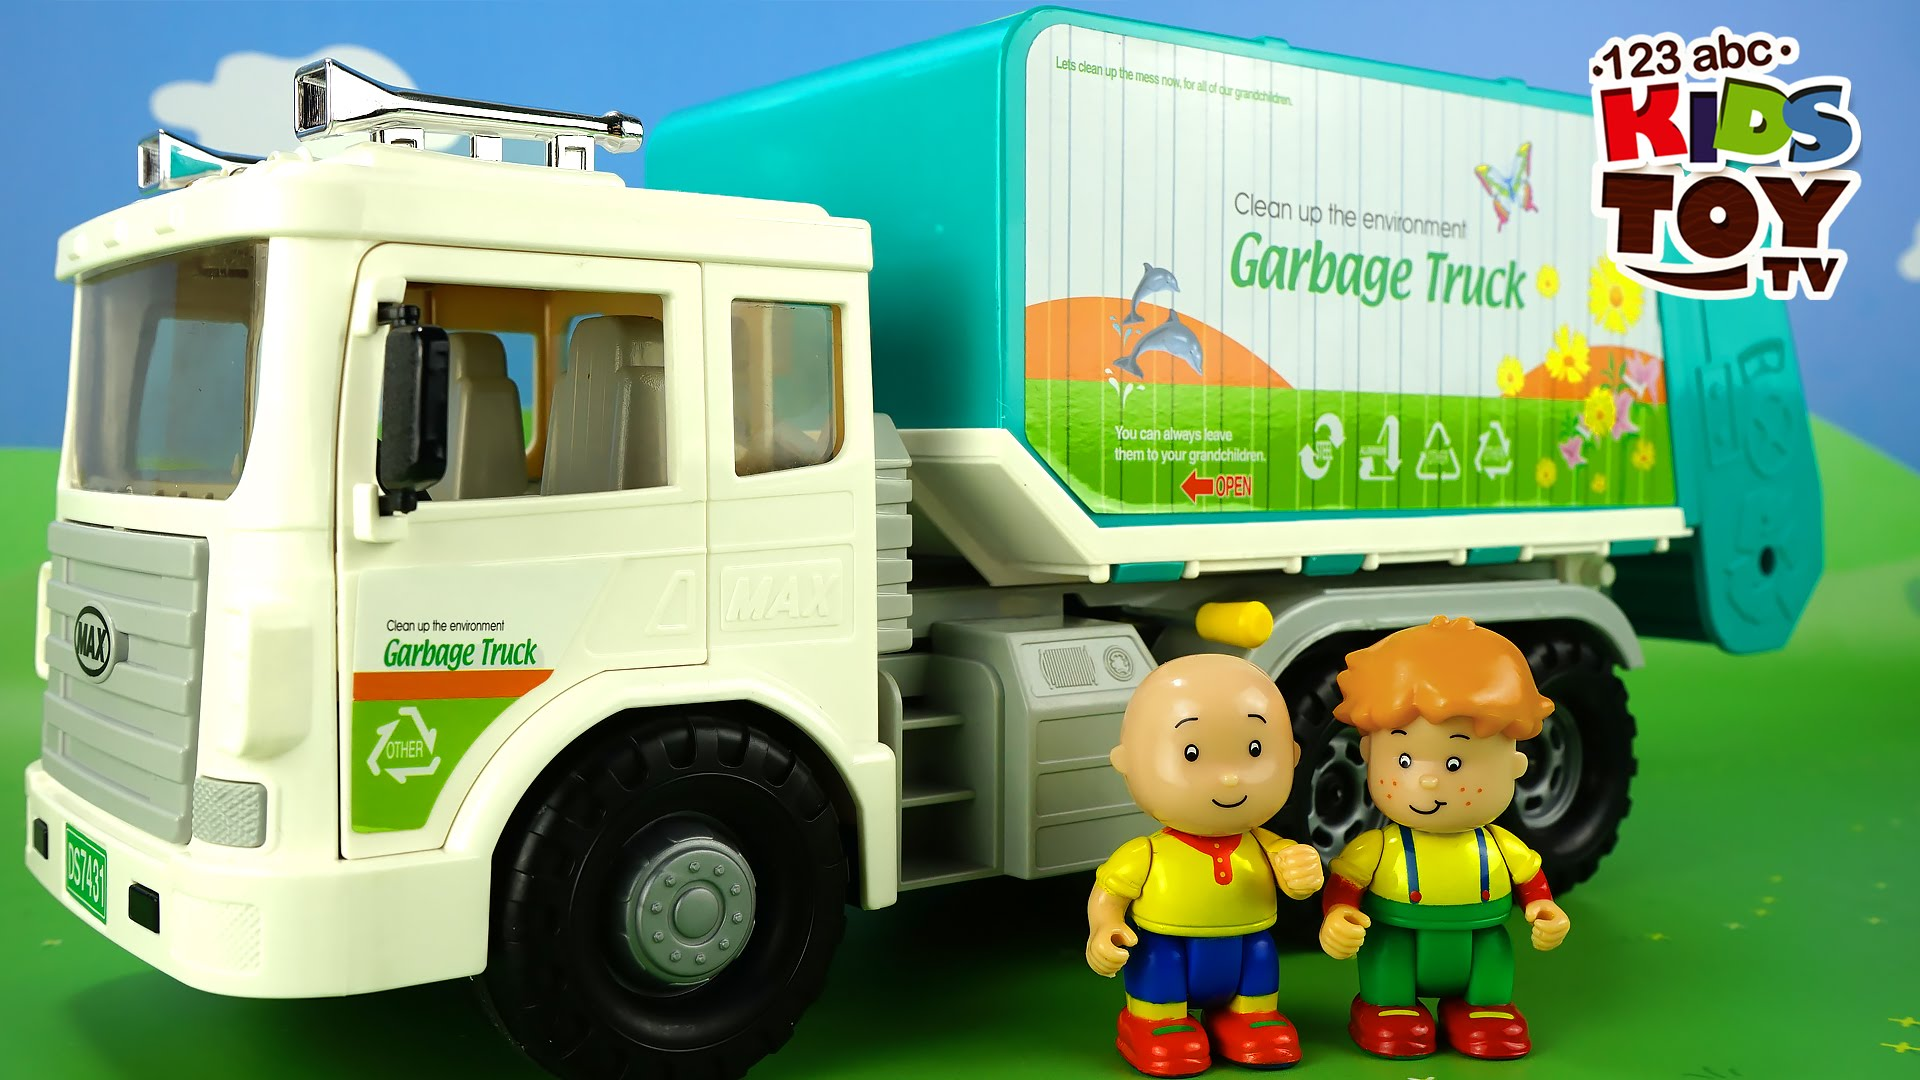 Toy GARBAGE TRUCK. Toys for boys. The amusing animated film for kids ...